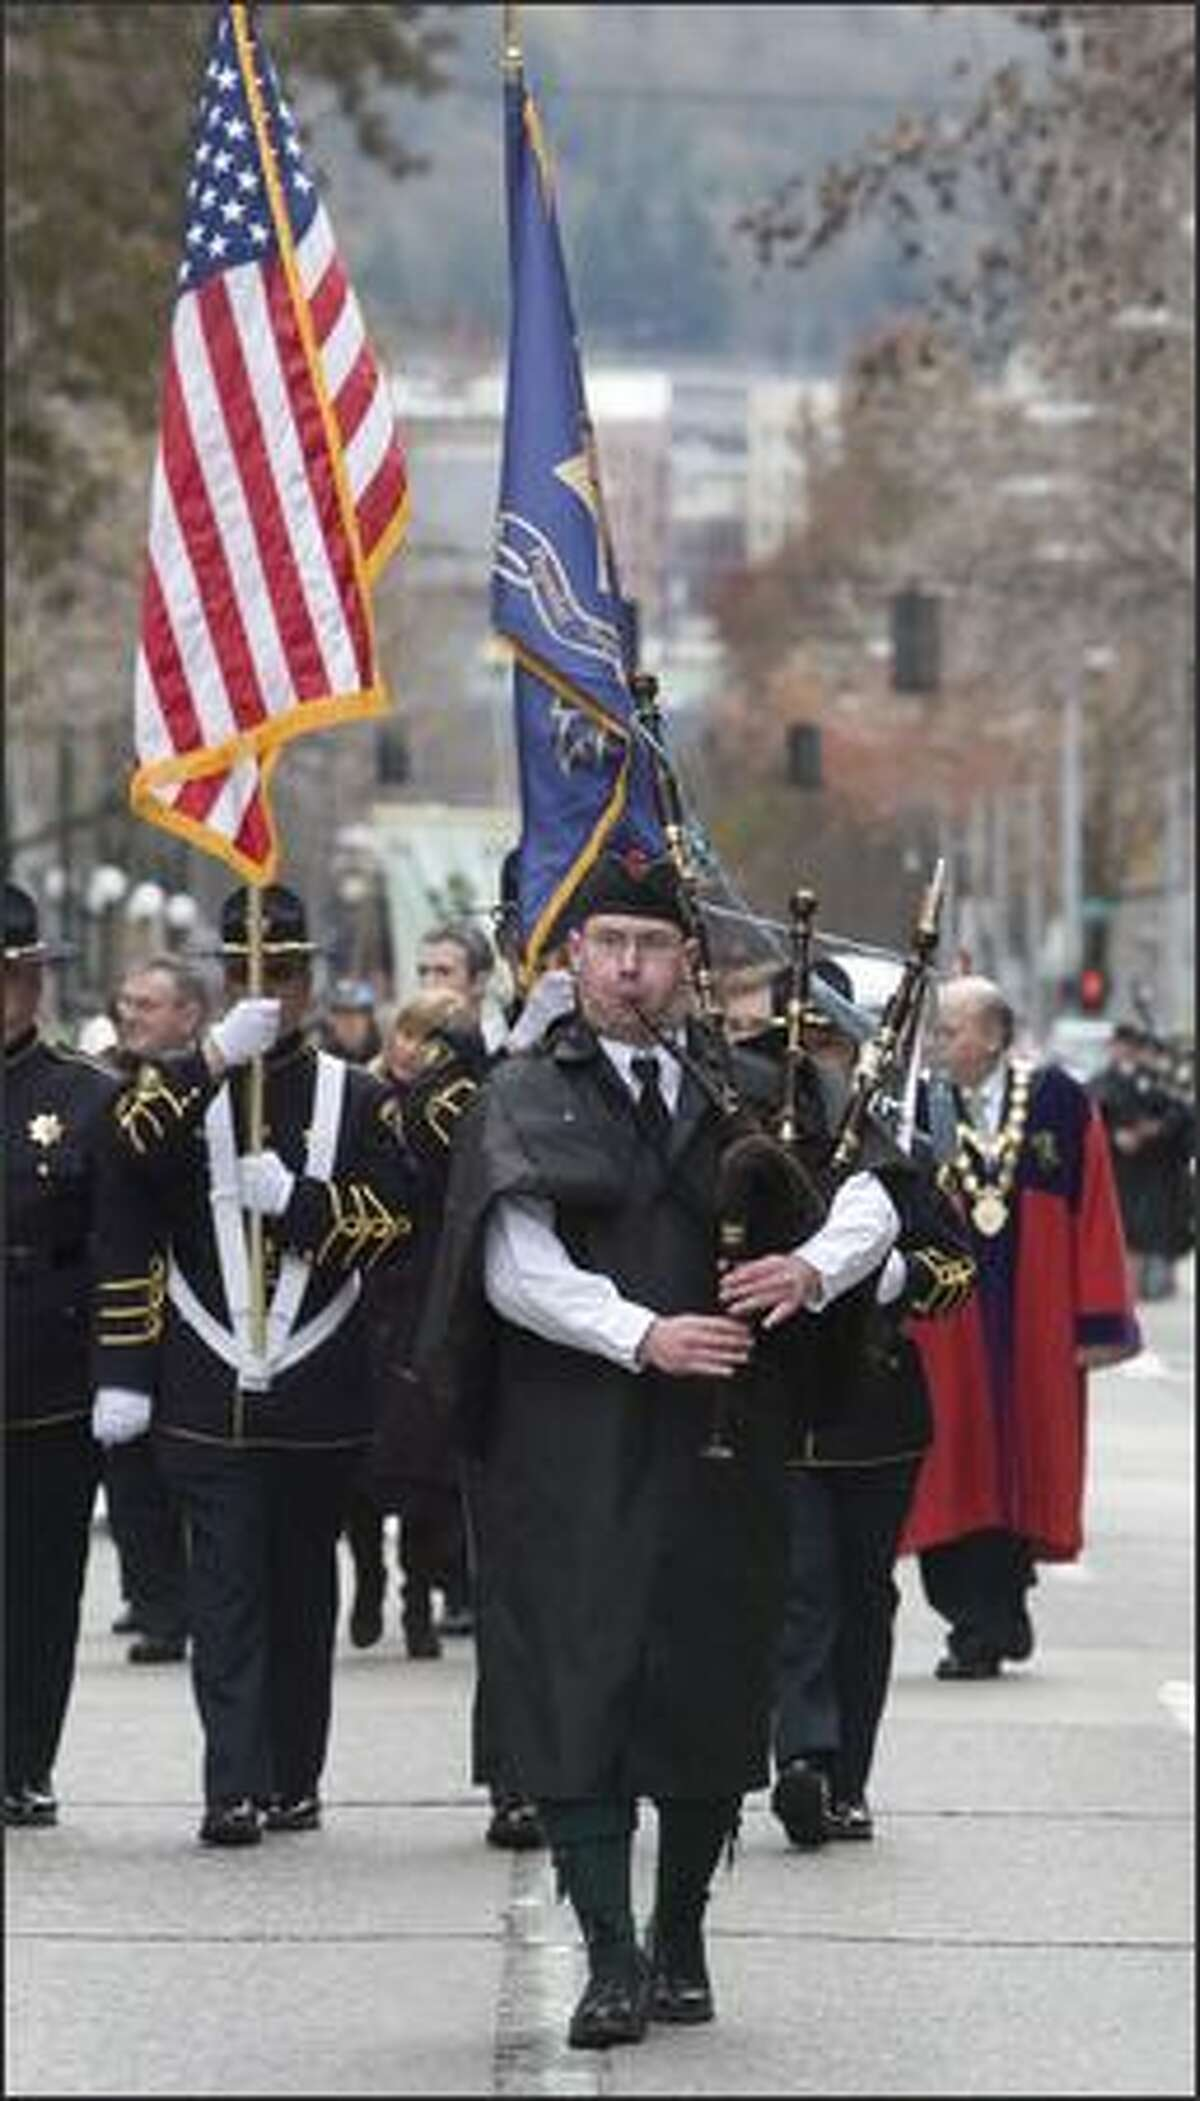 A bagpiper leads off the 37th annual St. Patrick's Day Parade in Seattle.